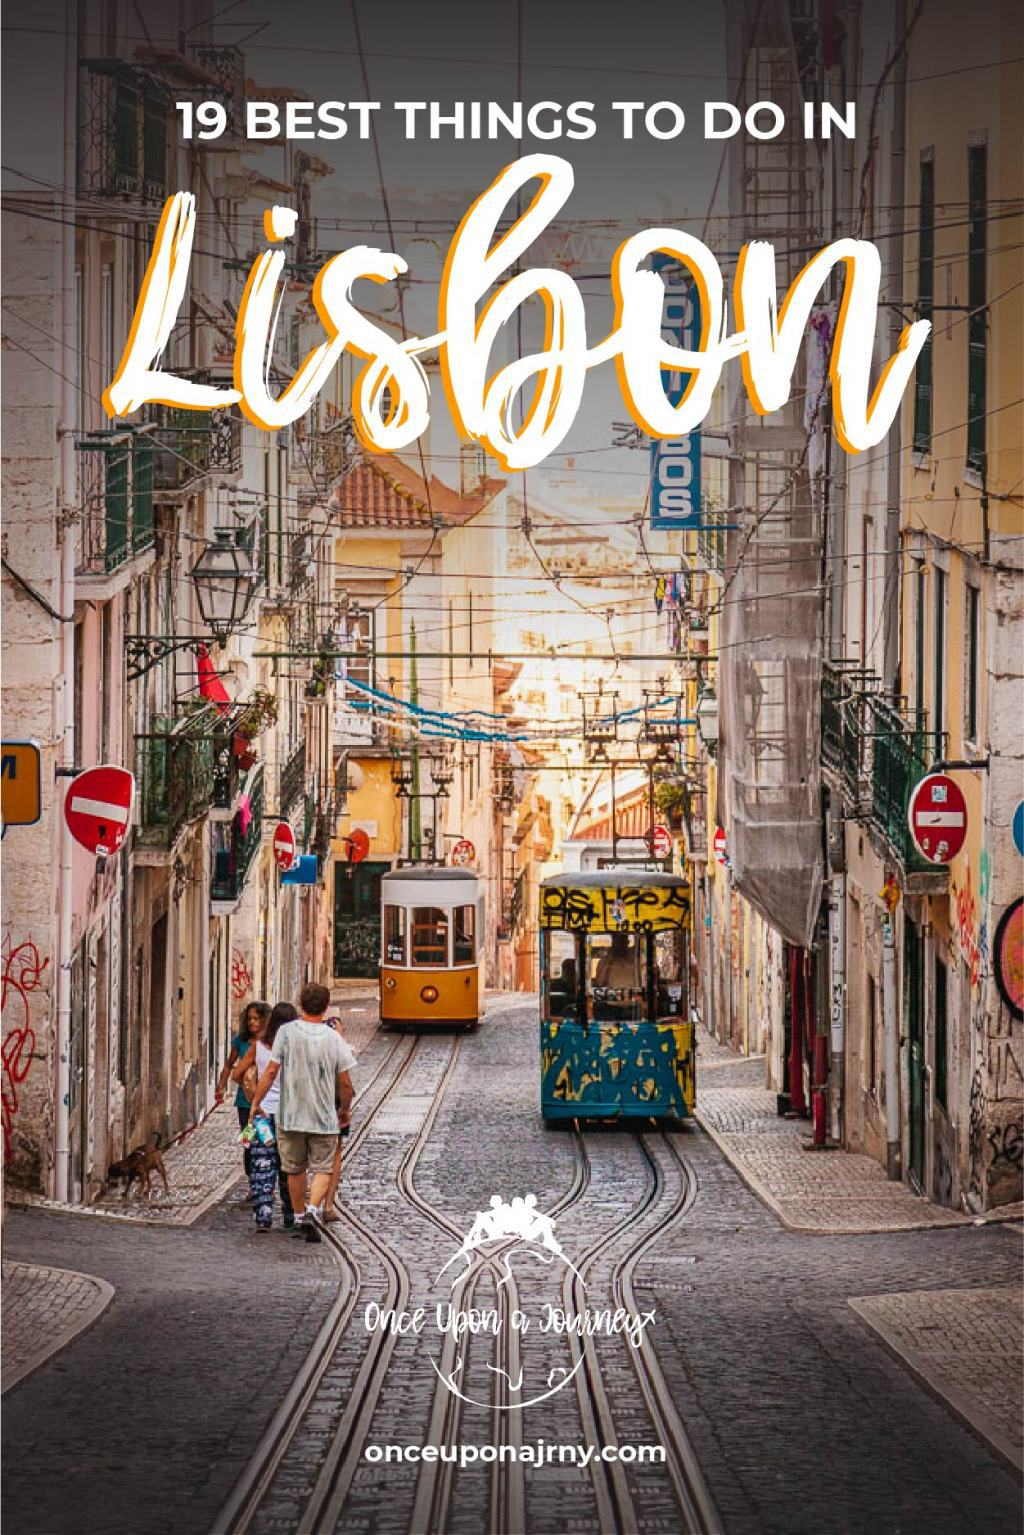 19 Best Things to Do in Lisbon